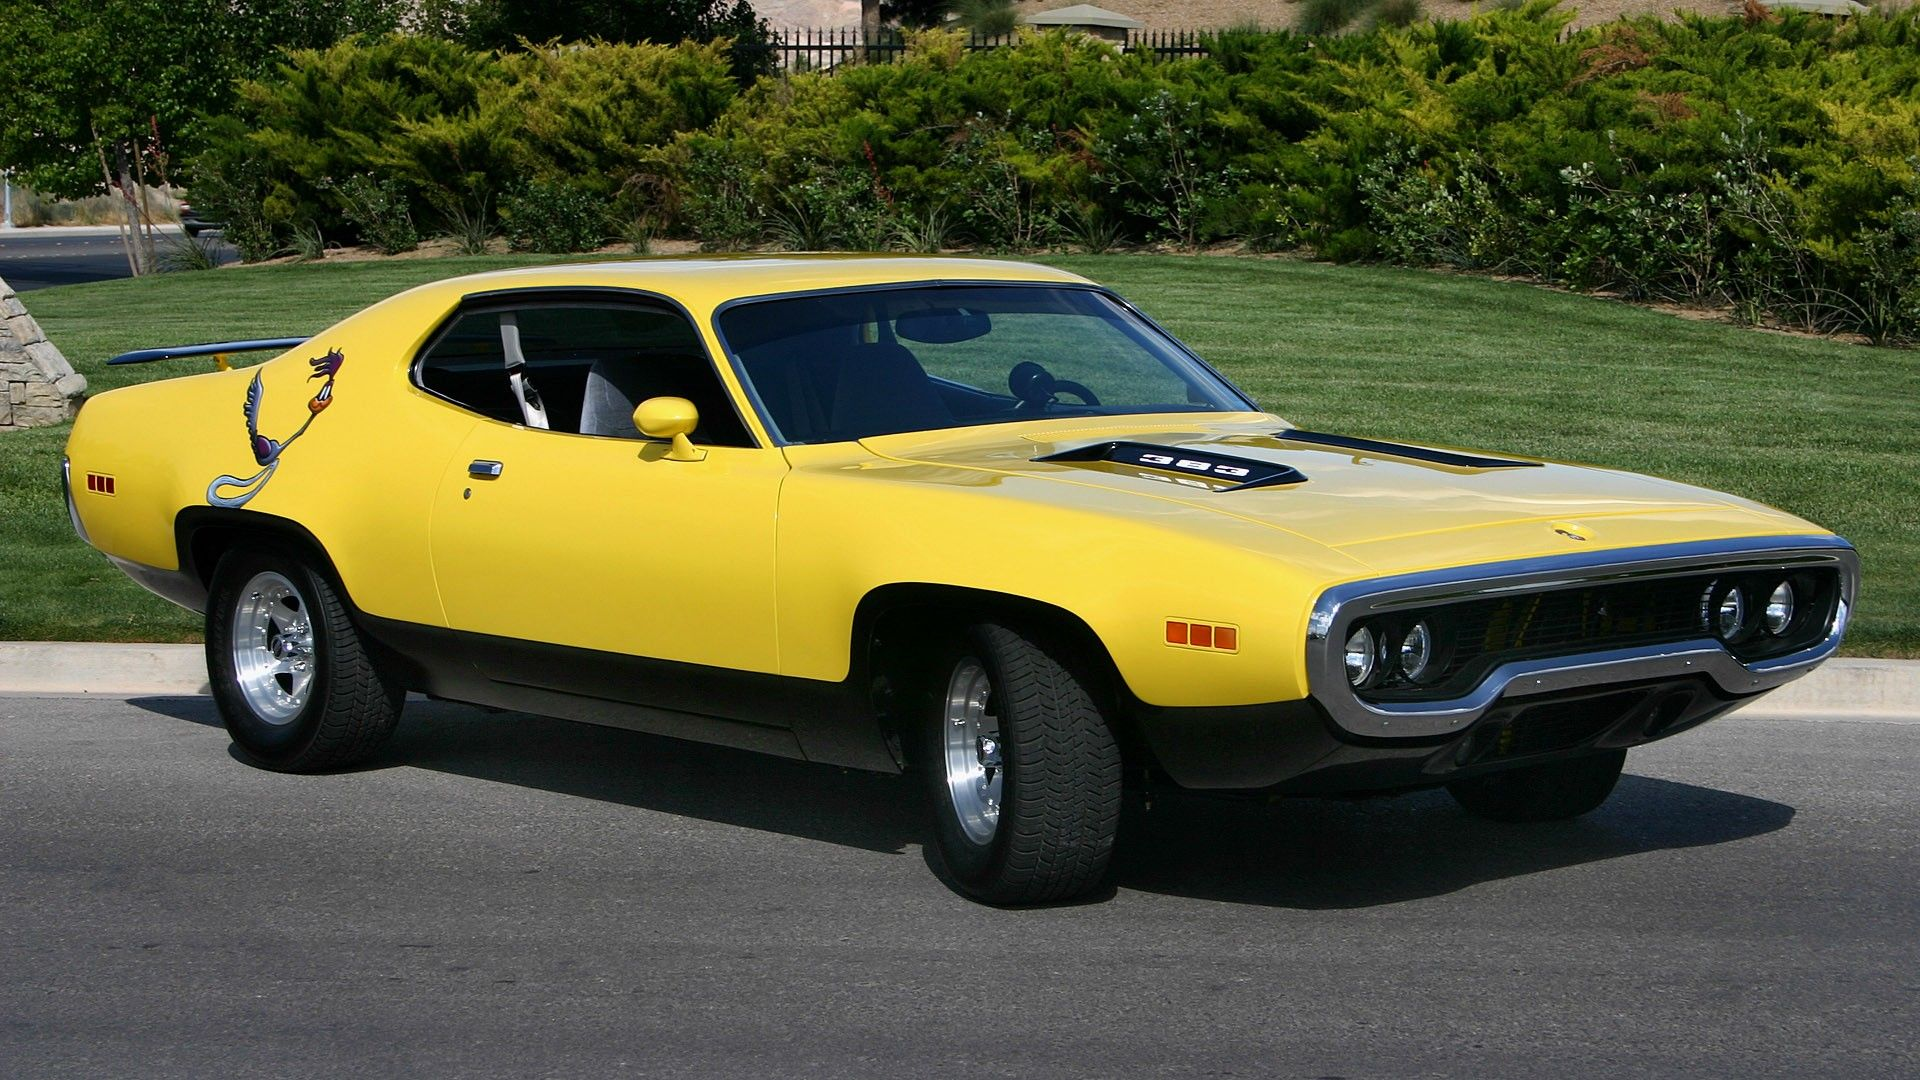 Cars Plymouth Roadrunner Automotive Muscle Car Wallpaper